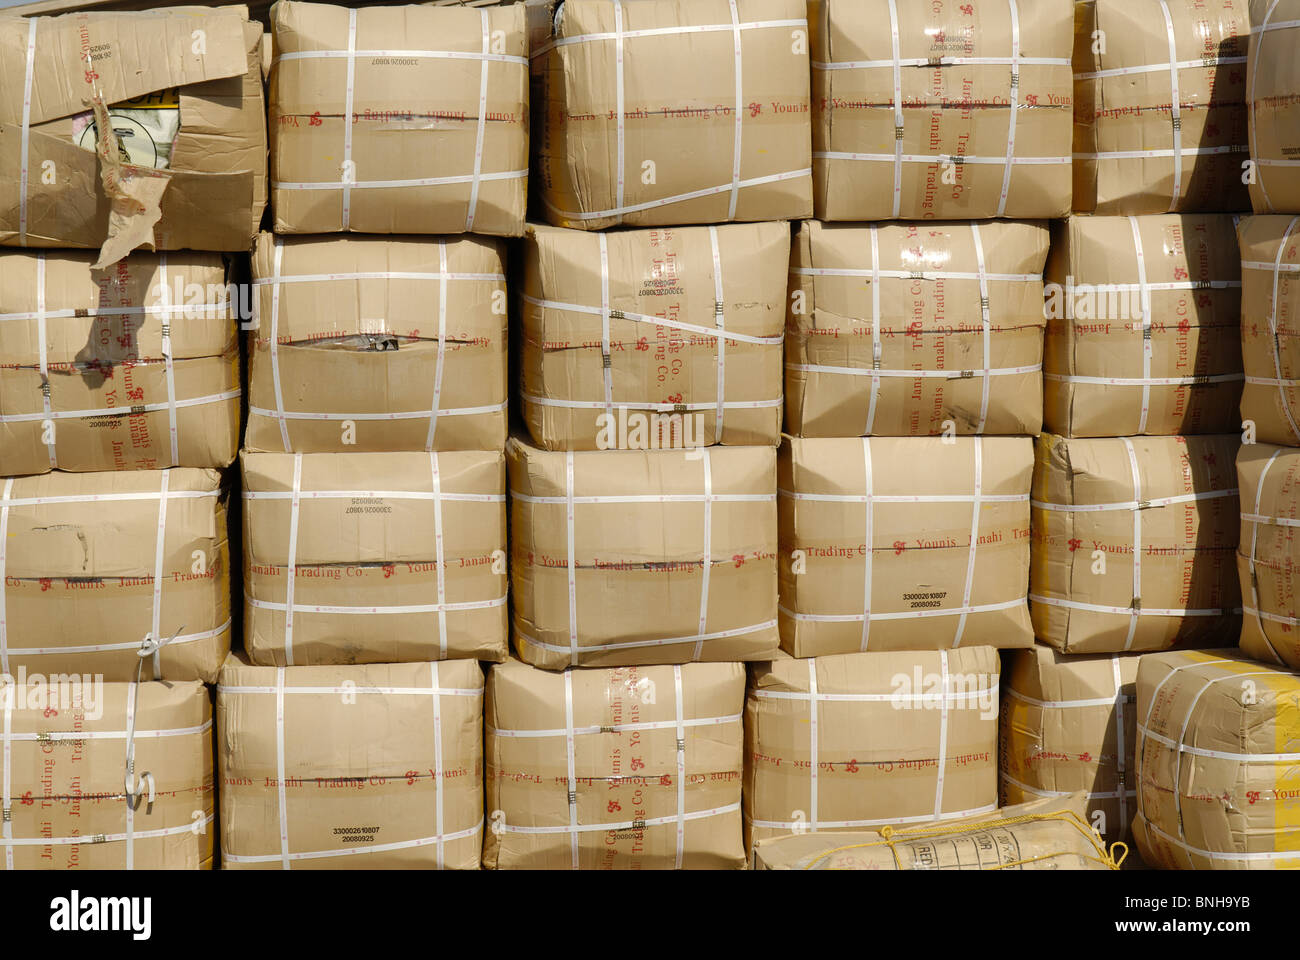 Pile large amount boxes emirate sharjah arabia arabic